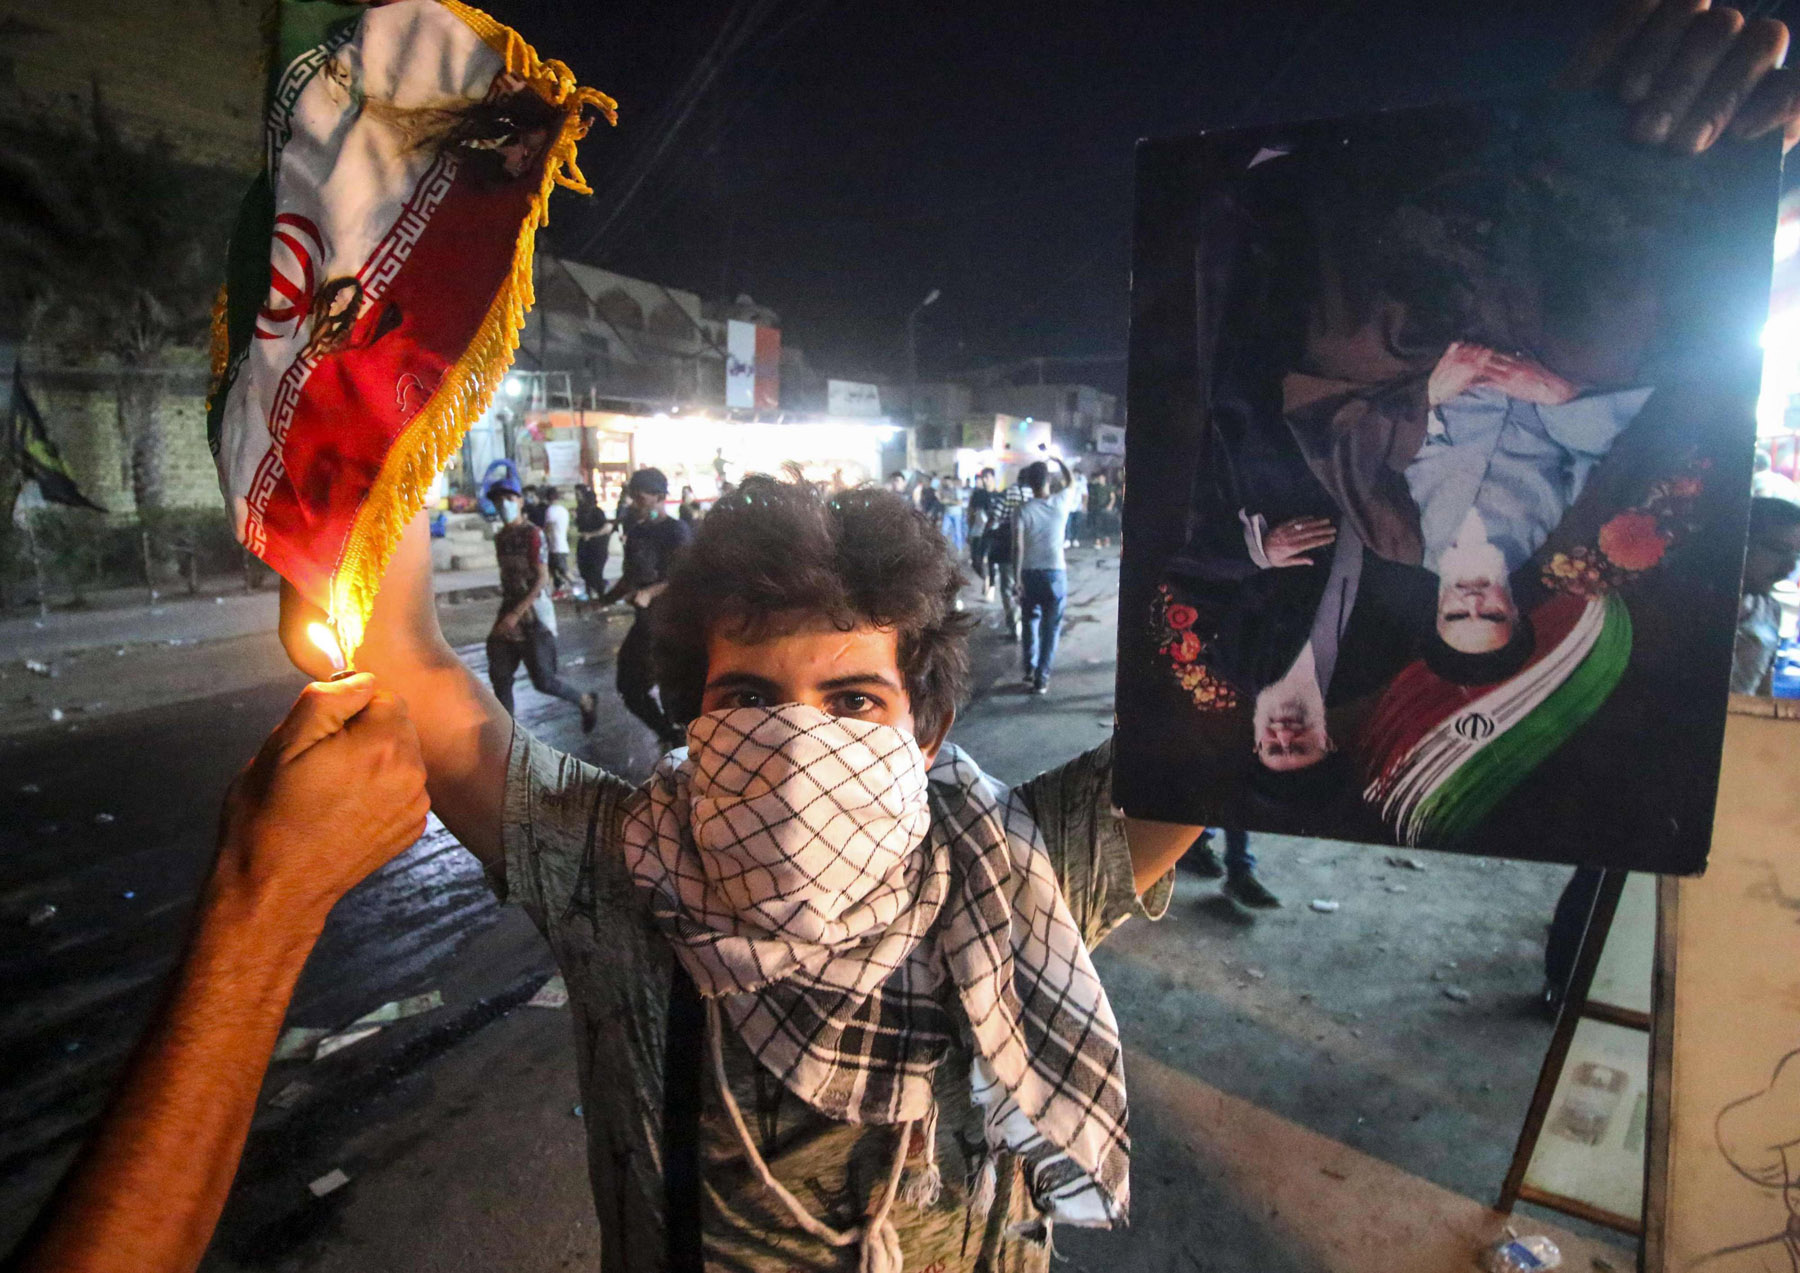 An Iraqi protester holds up an Iranian flag as another lights it up during protests in Basra, on September 7.  (AFP)